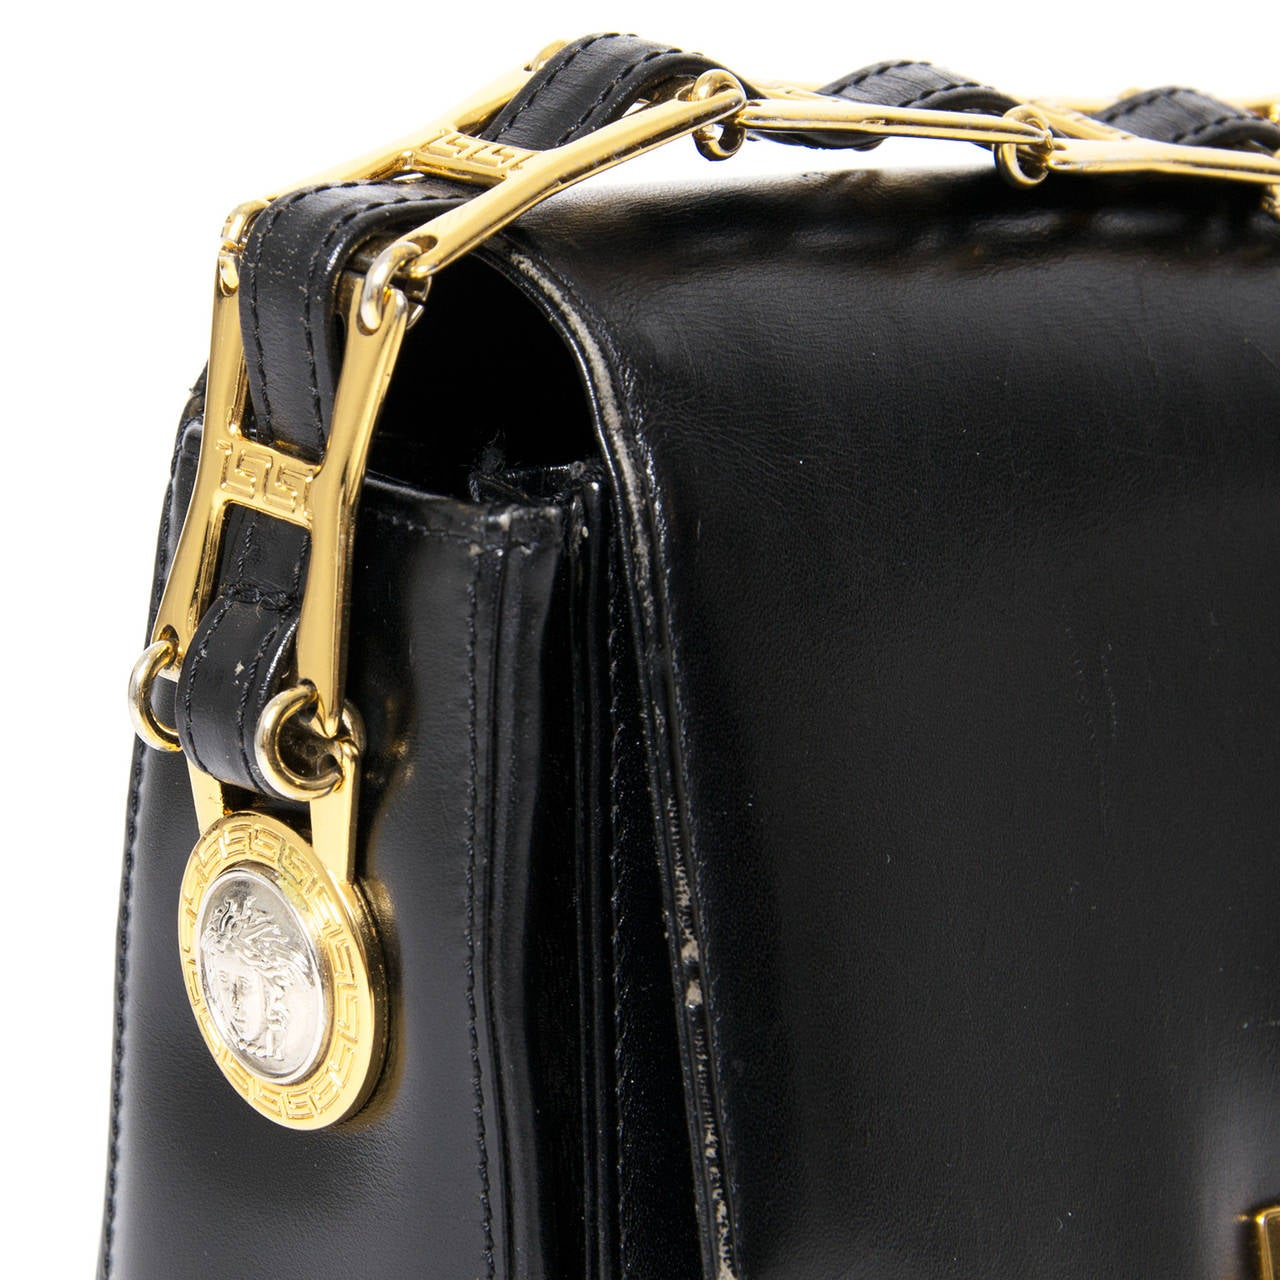 Gianni Versace Black Leather Medusa Handbag For Sale 1